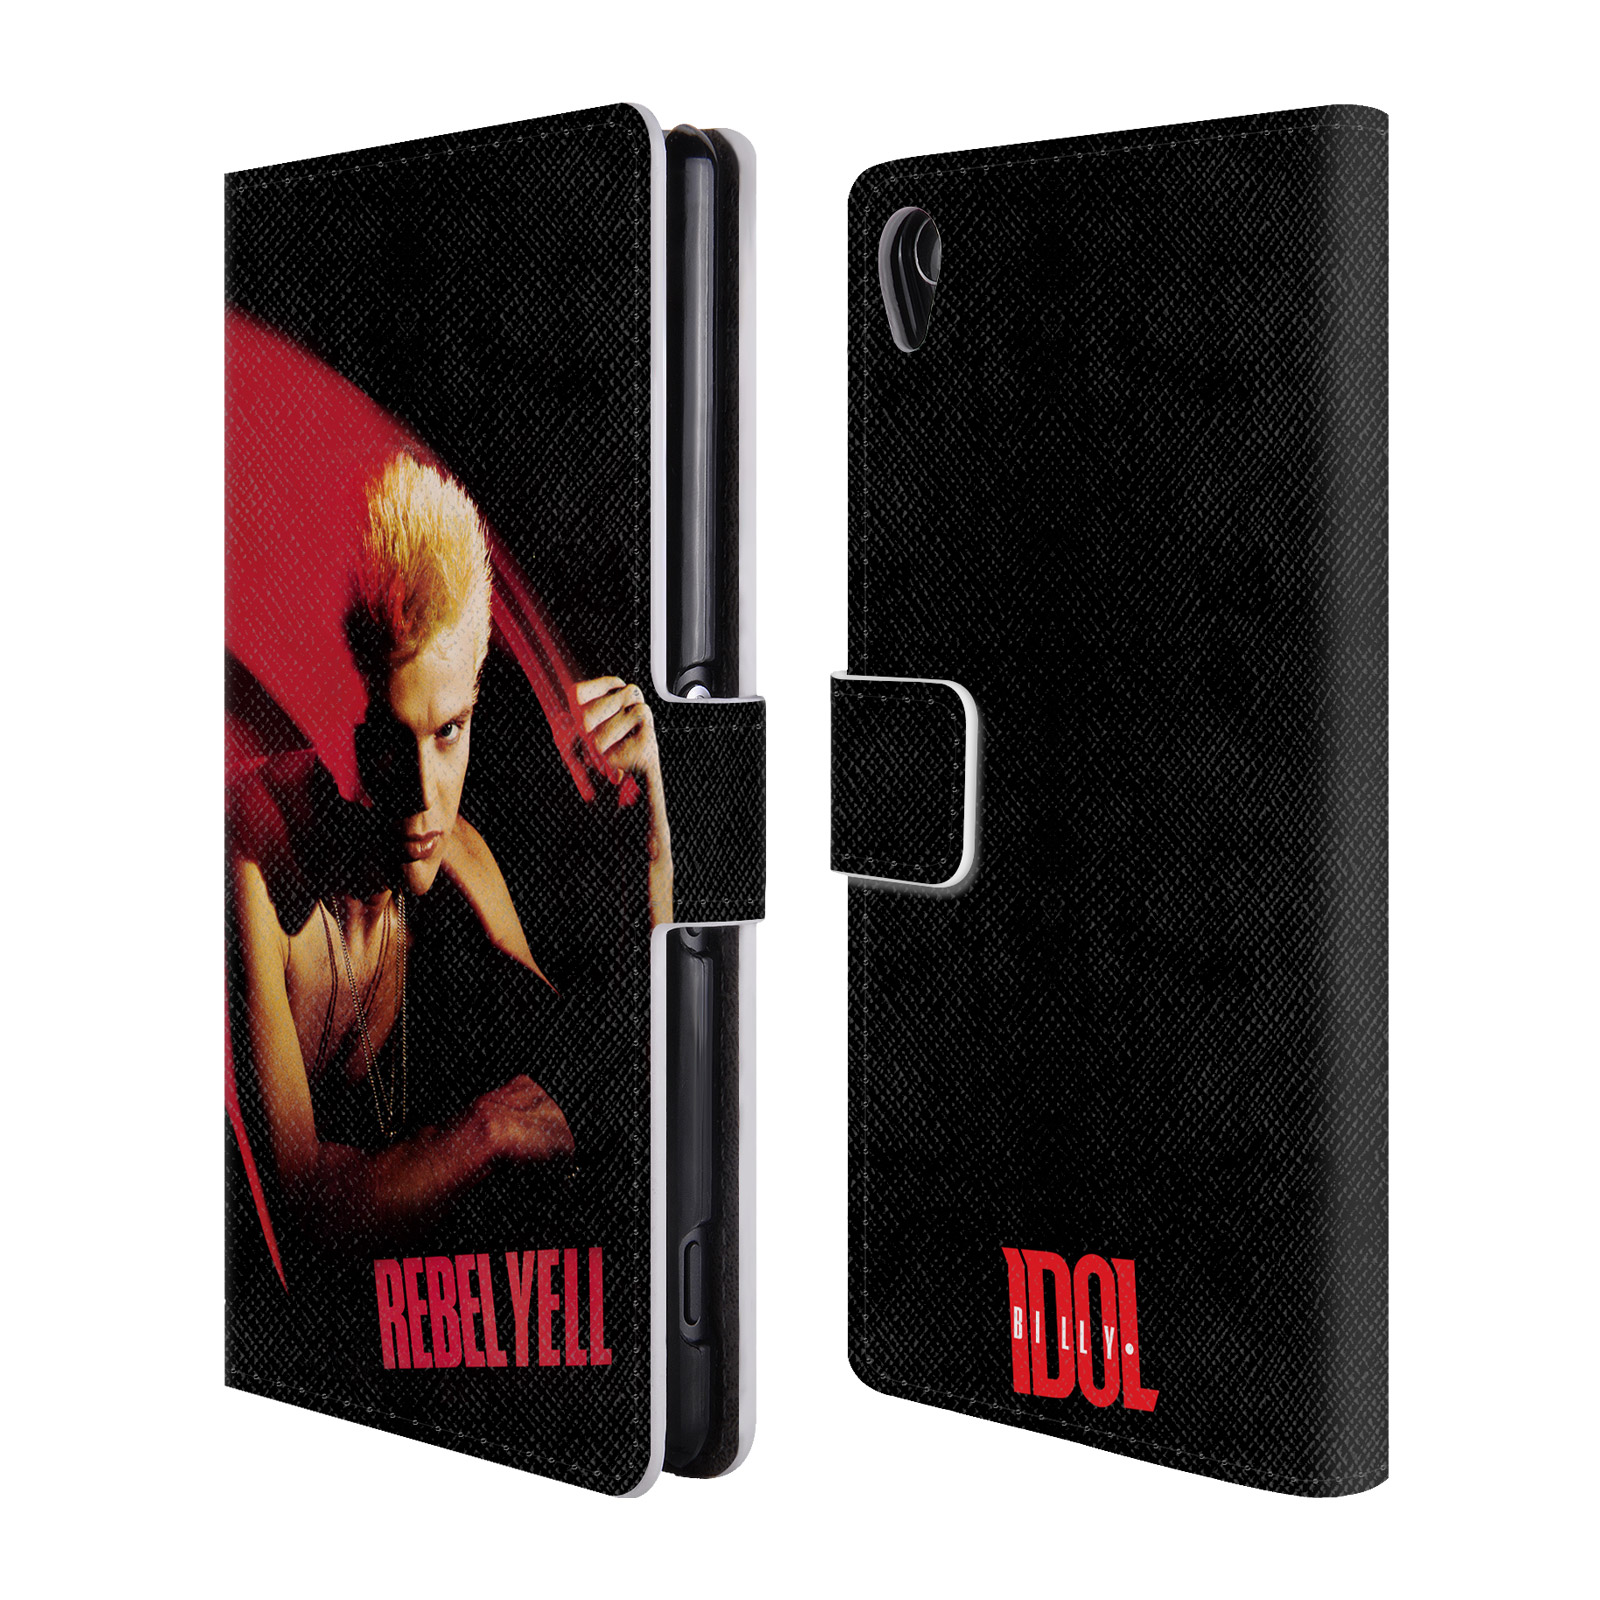 OFFICIAL-BILLY-IDOL-ALBUMS-LEATHER-BOOK-WALLET-CASE-COVER-FOR-SONY-PHONES-1